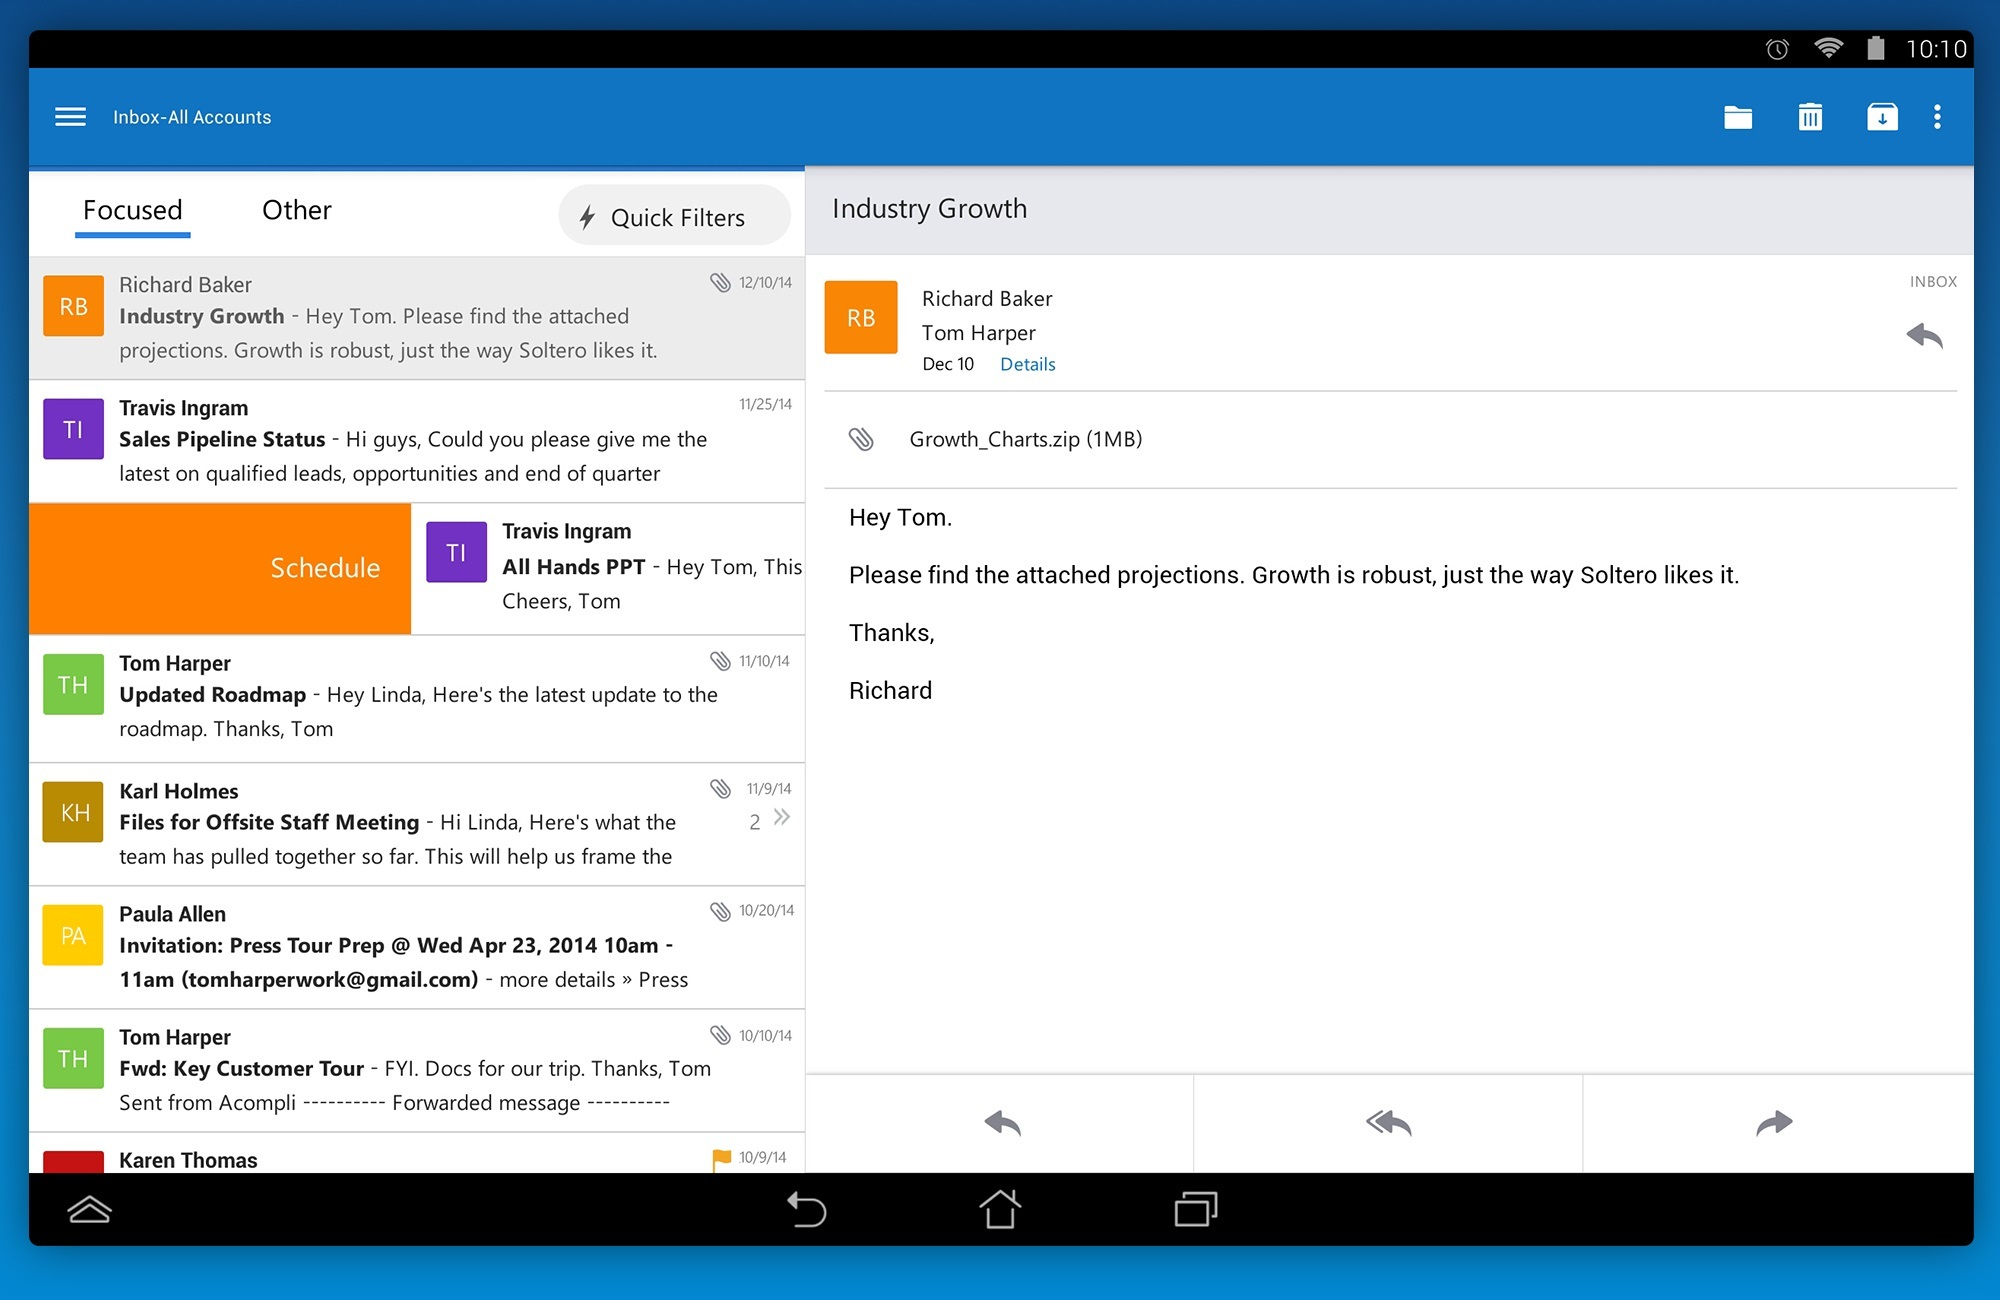 ... email startup Acompli, Microsoft launches Outlook for Android and iOS